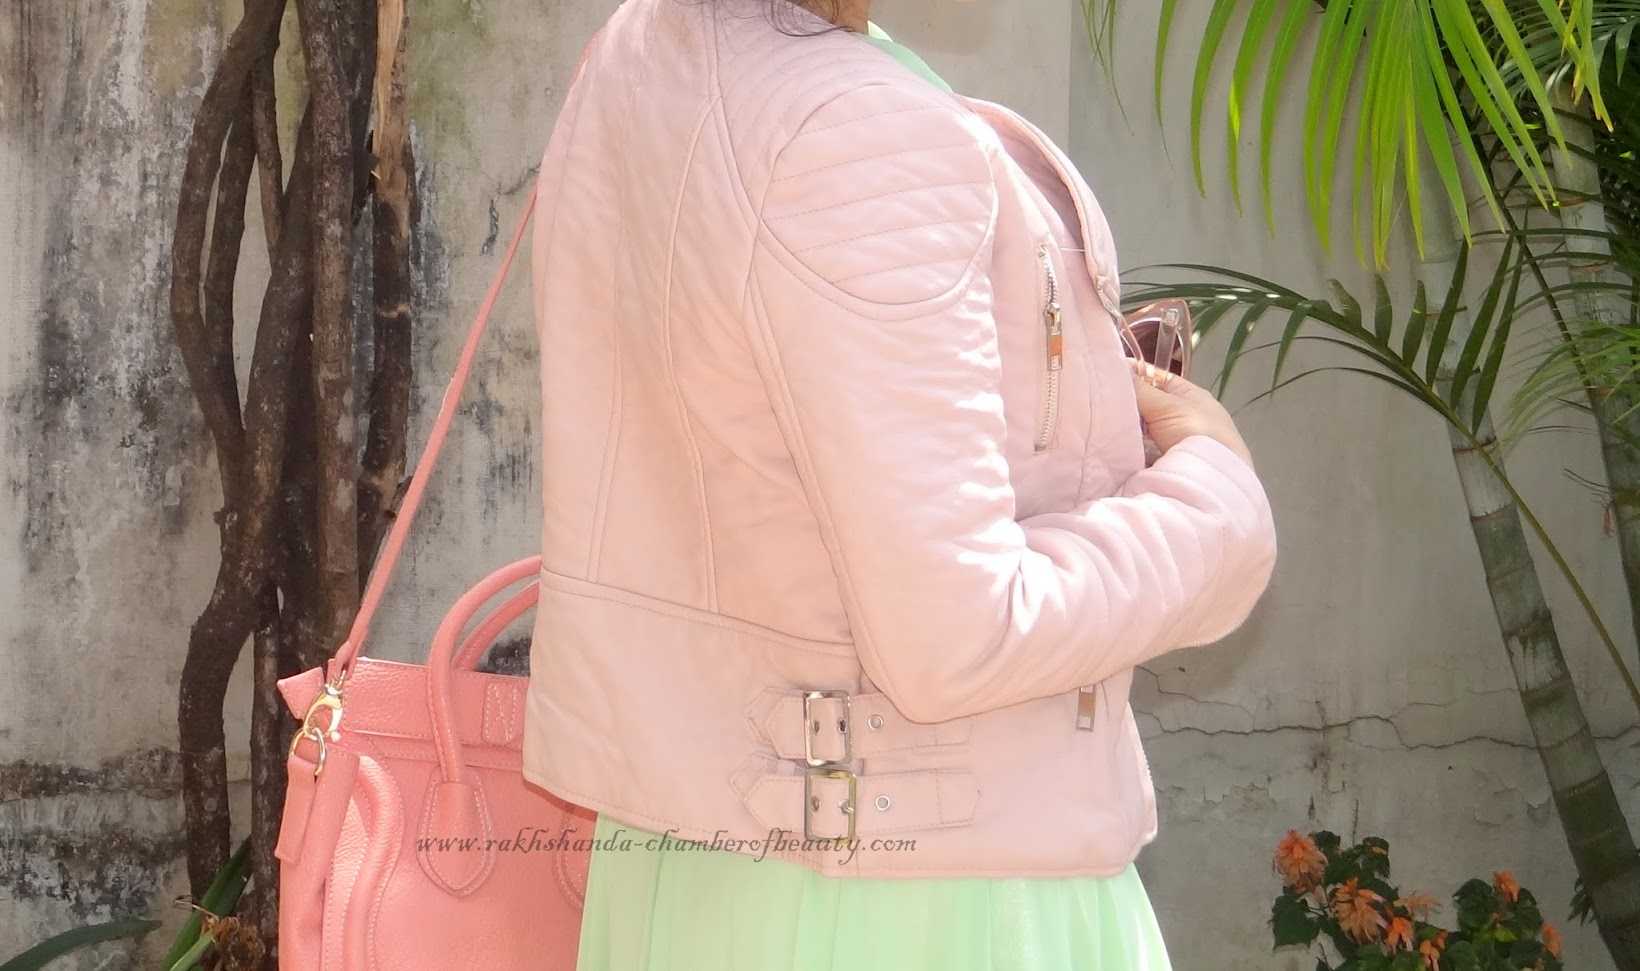 Delayed pastels, fashion, Indian fashion blogger, OOTD, outfit of the day, StyleMoi, styling a pastel leather jacket, Chamber of Beauty